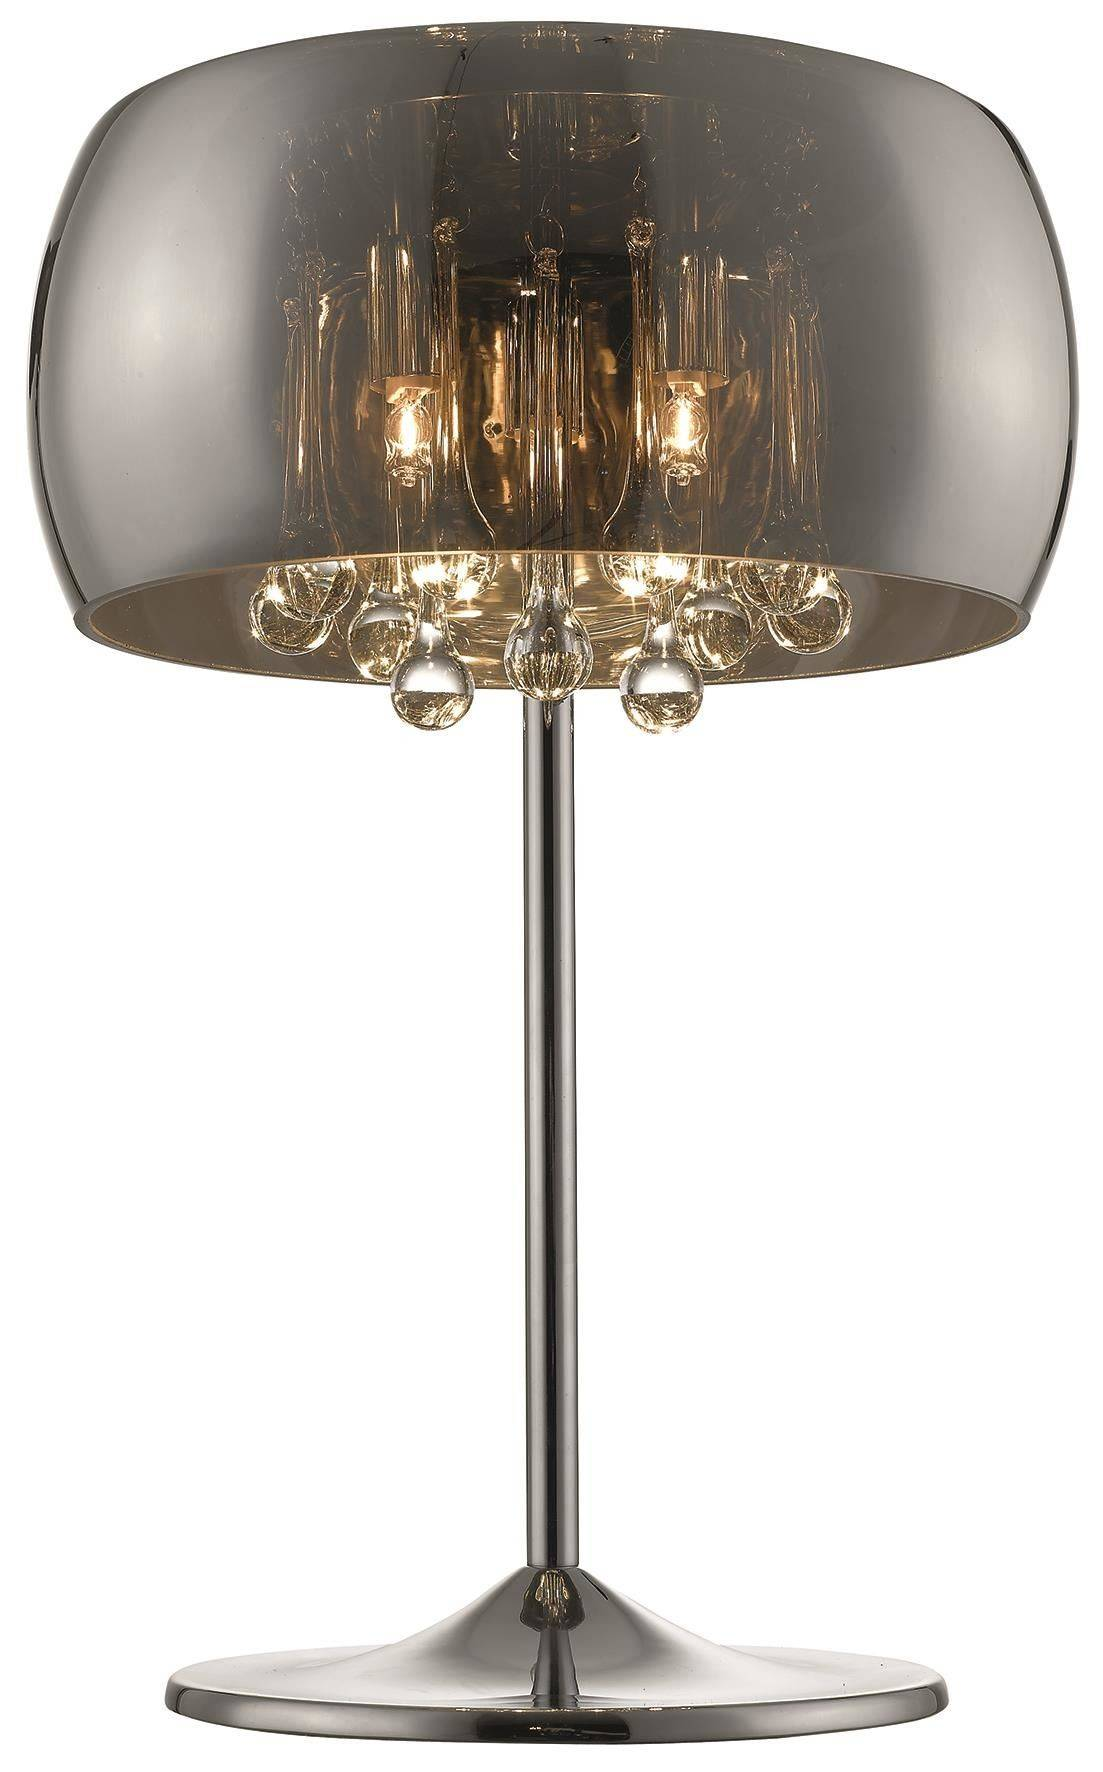 3 Light Table Lamp Chrome Copper Crystal With Smoked Glass Shade